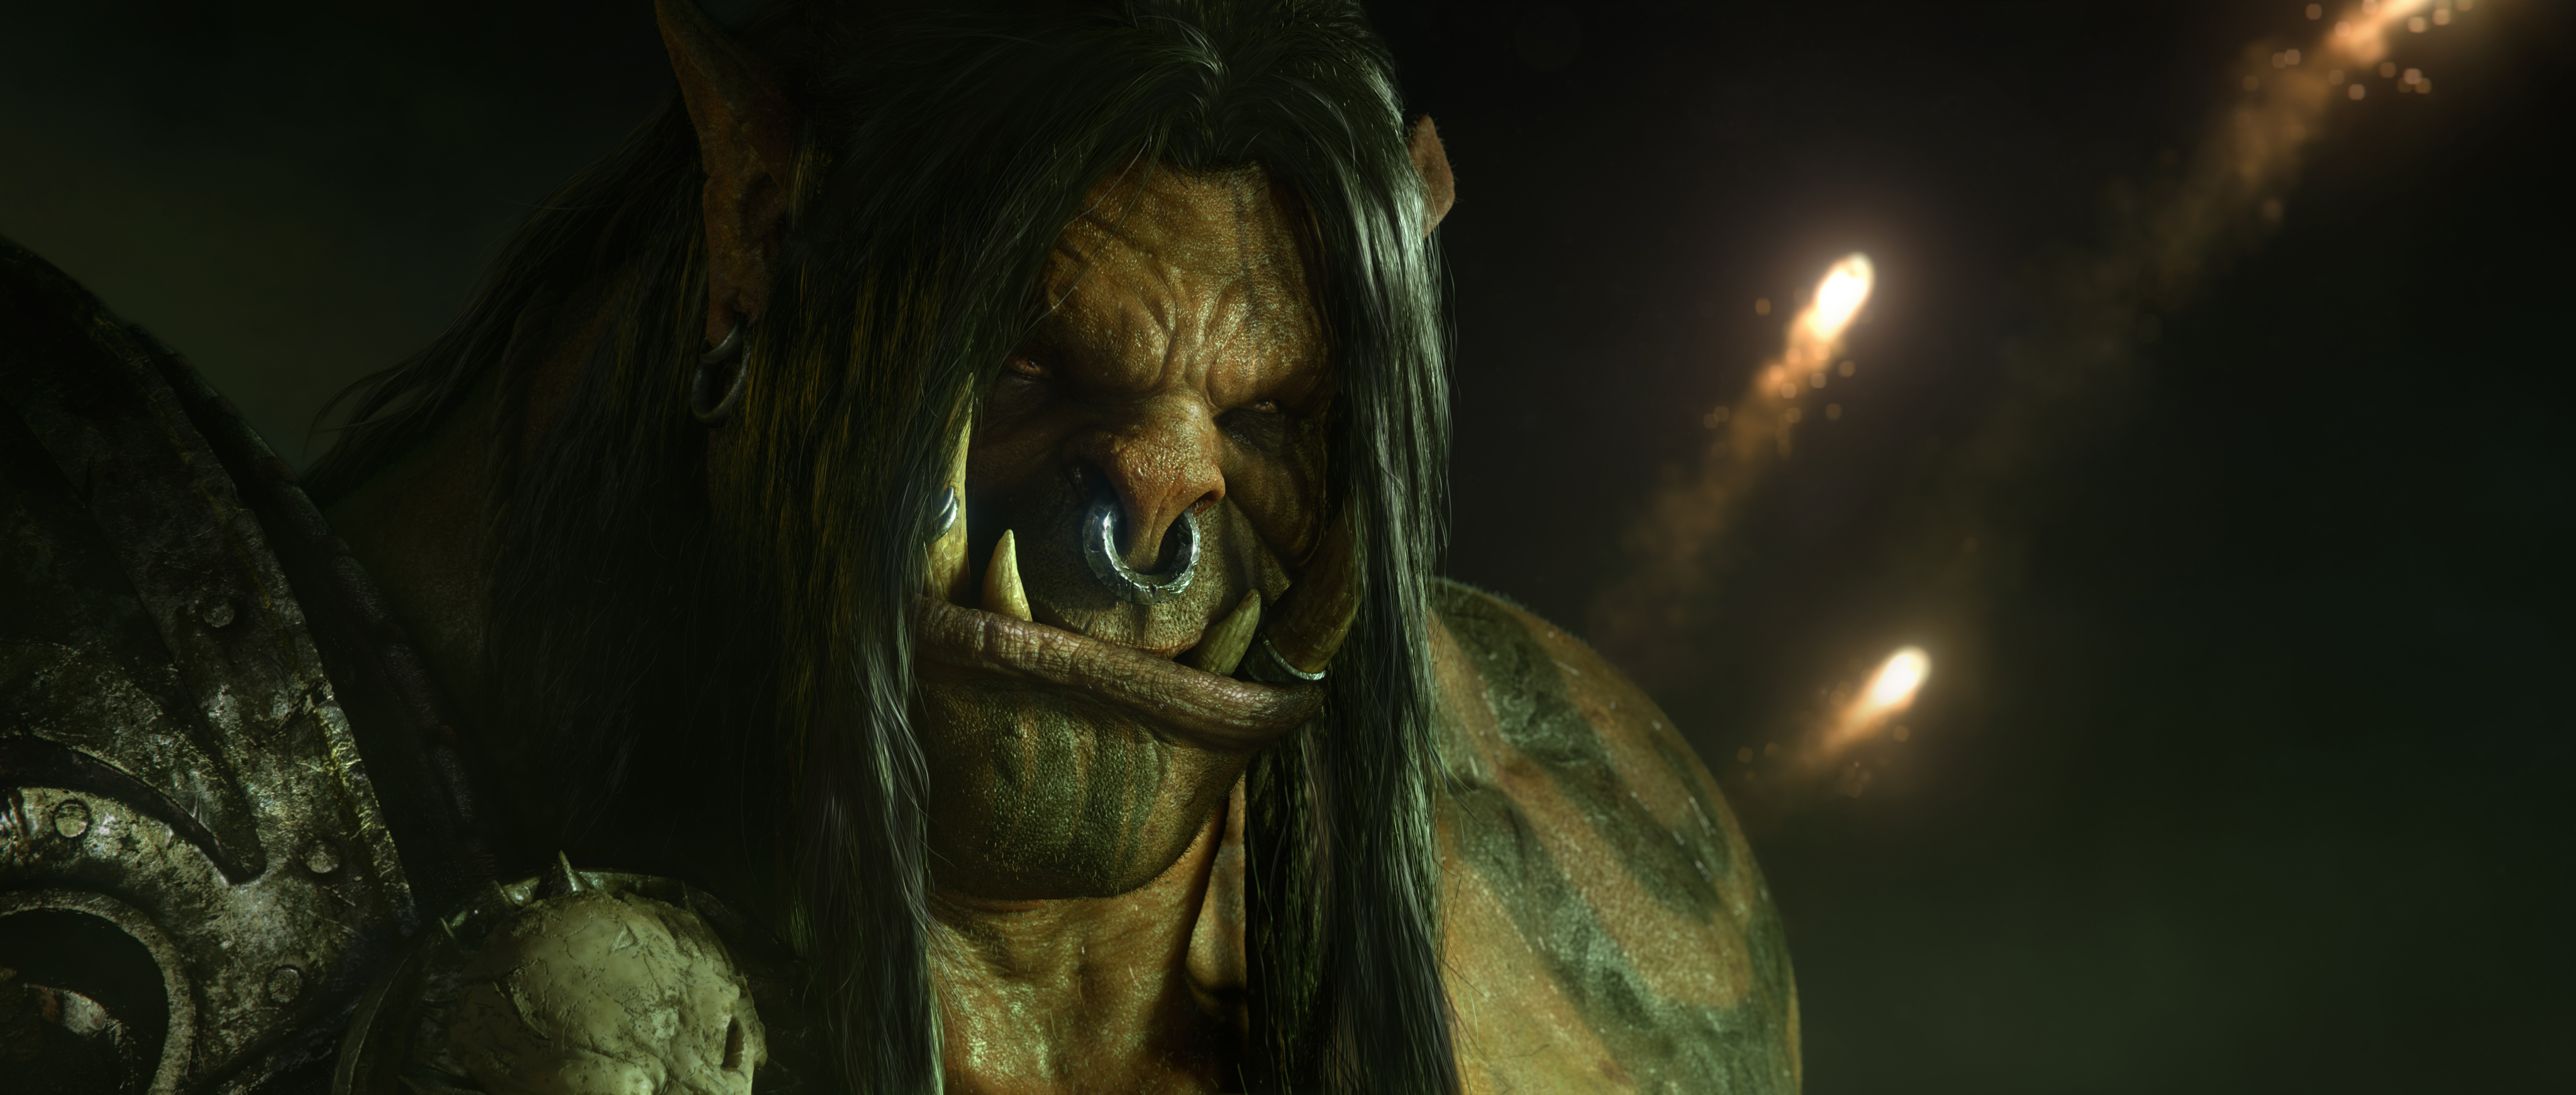 Warlords_Cinematic_300dpi_GROMMASH_HELLSCREAM